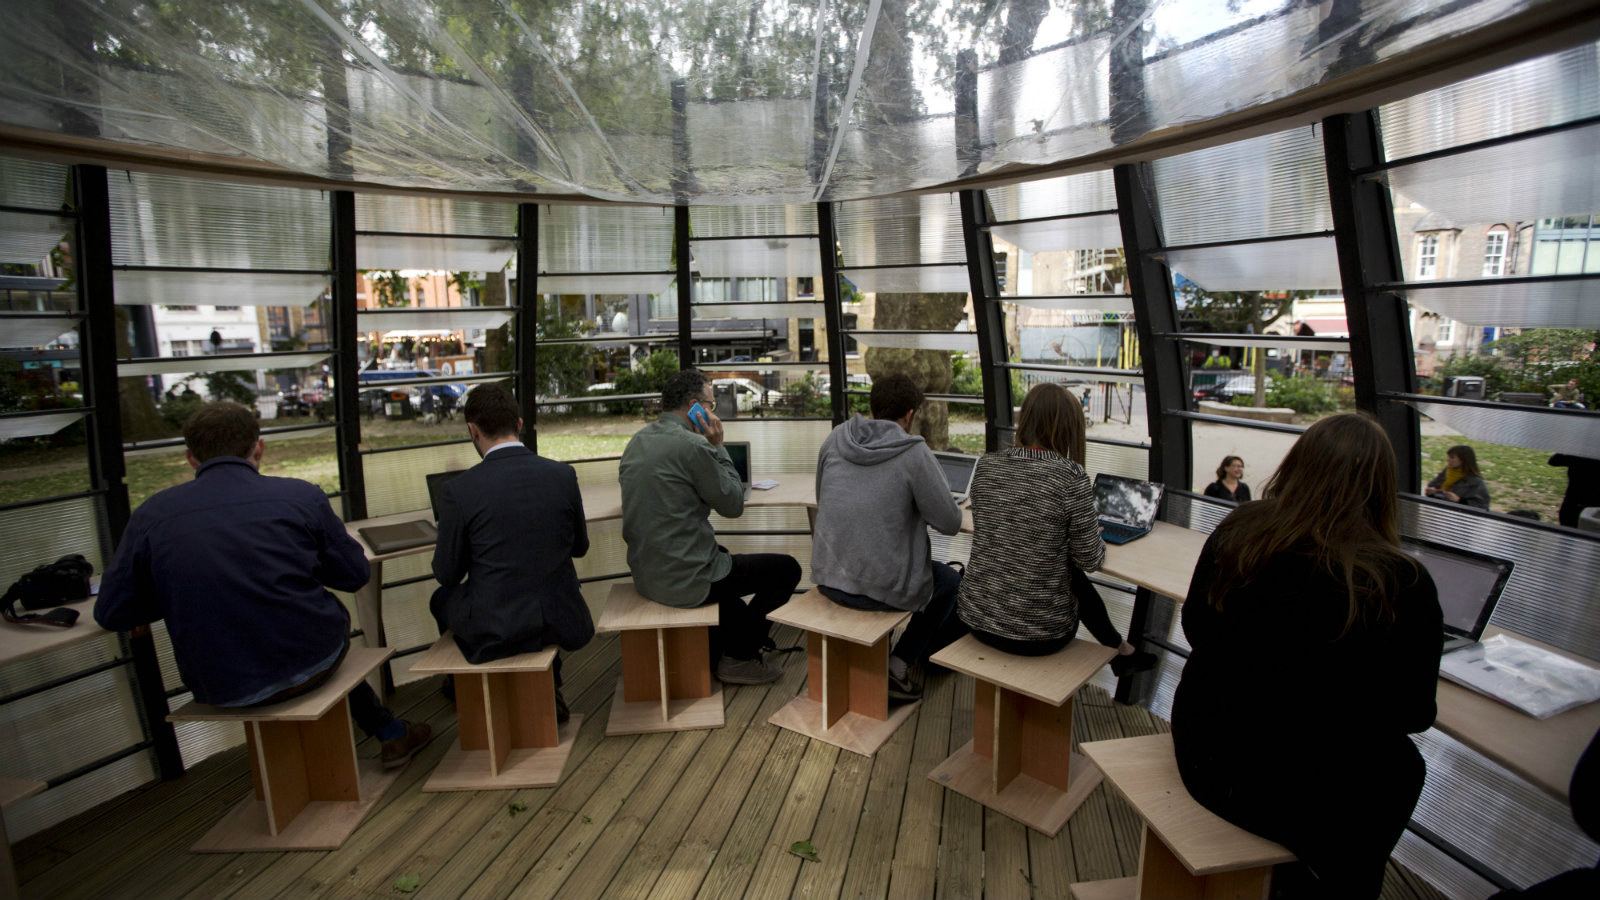 People pose for the media and work during an event to launch TREExOFFICE in Hoxton Square, London. Built around a tree, the concept in co-working space has eight workstations available to be hired. (AP Photo/Matt Dunham)